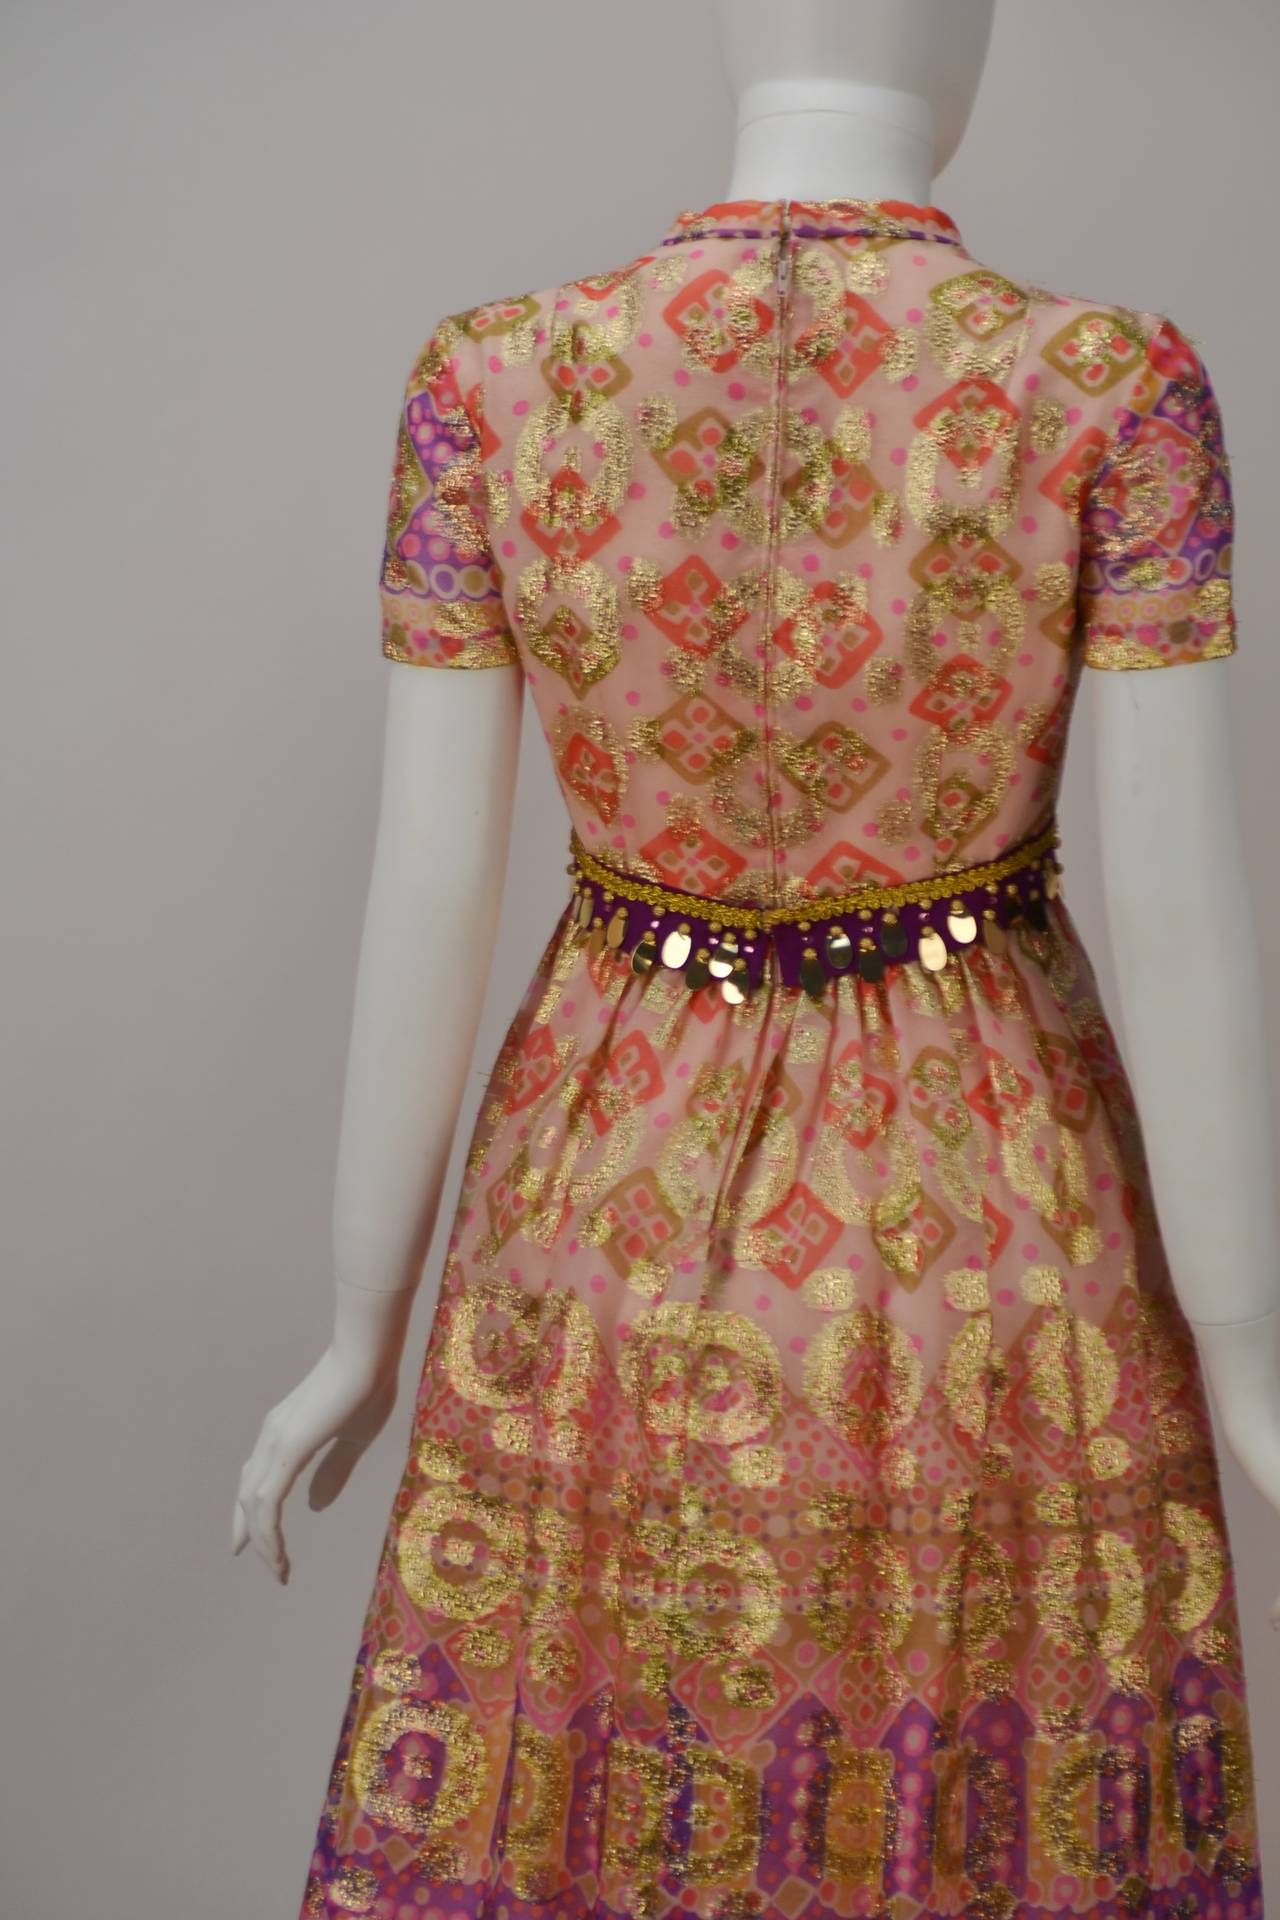 Gino Charles Gold Print Dress, 1970s  In Excellent Condition For Sale In Houston, TX